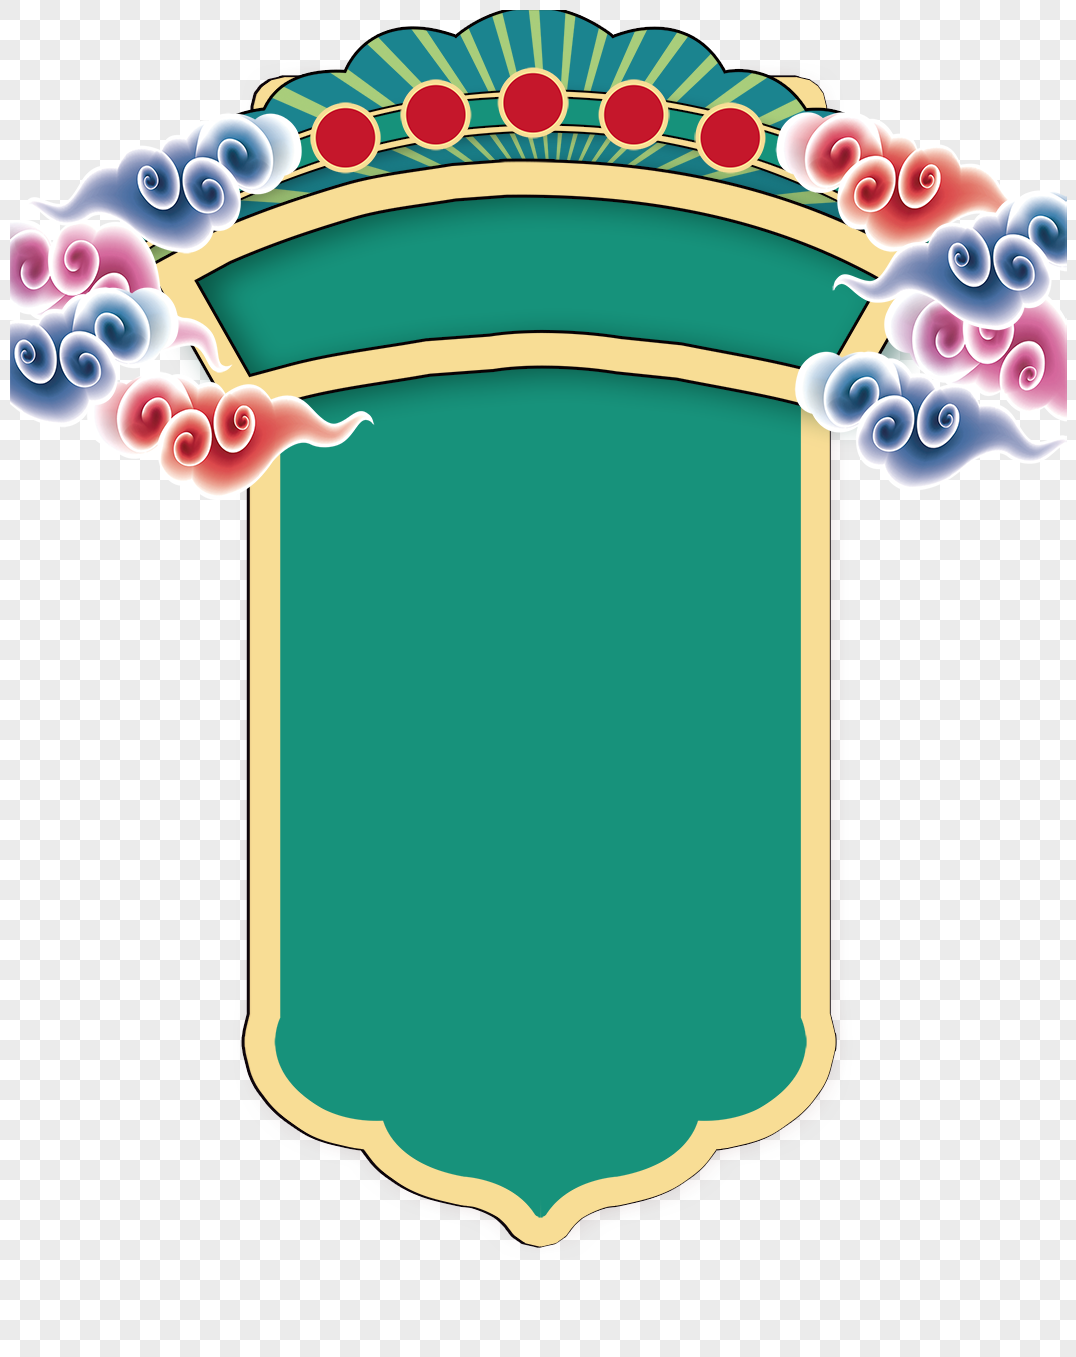 New years auspicious cloud and banner border background ...